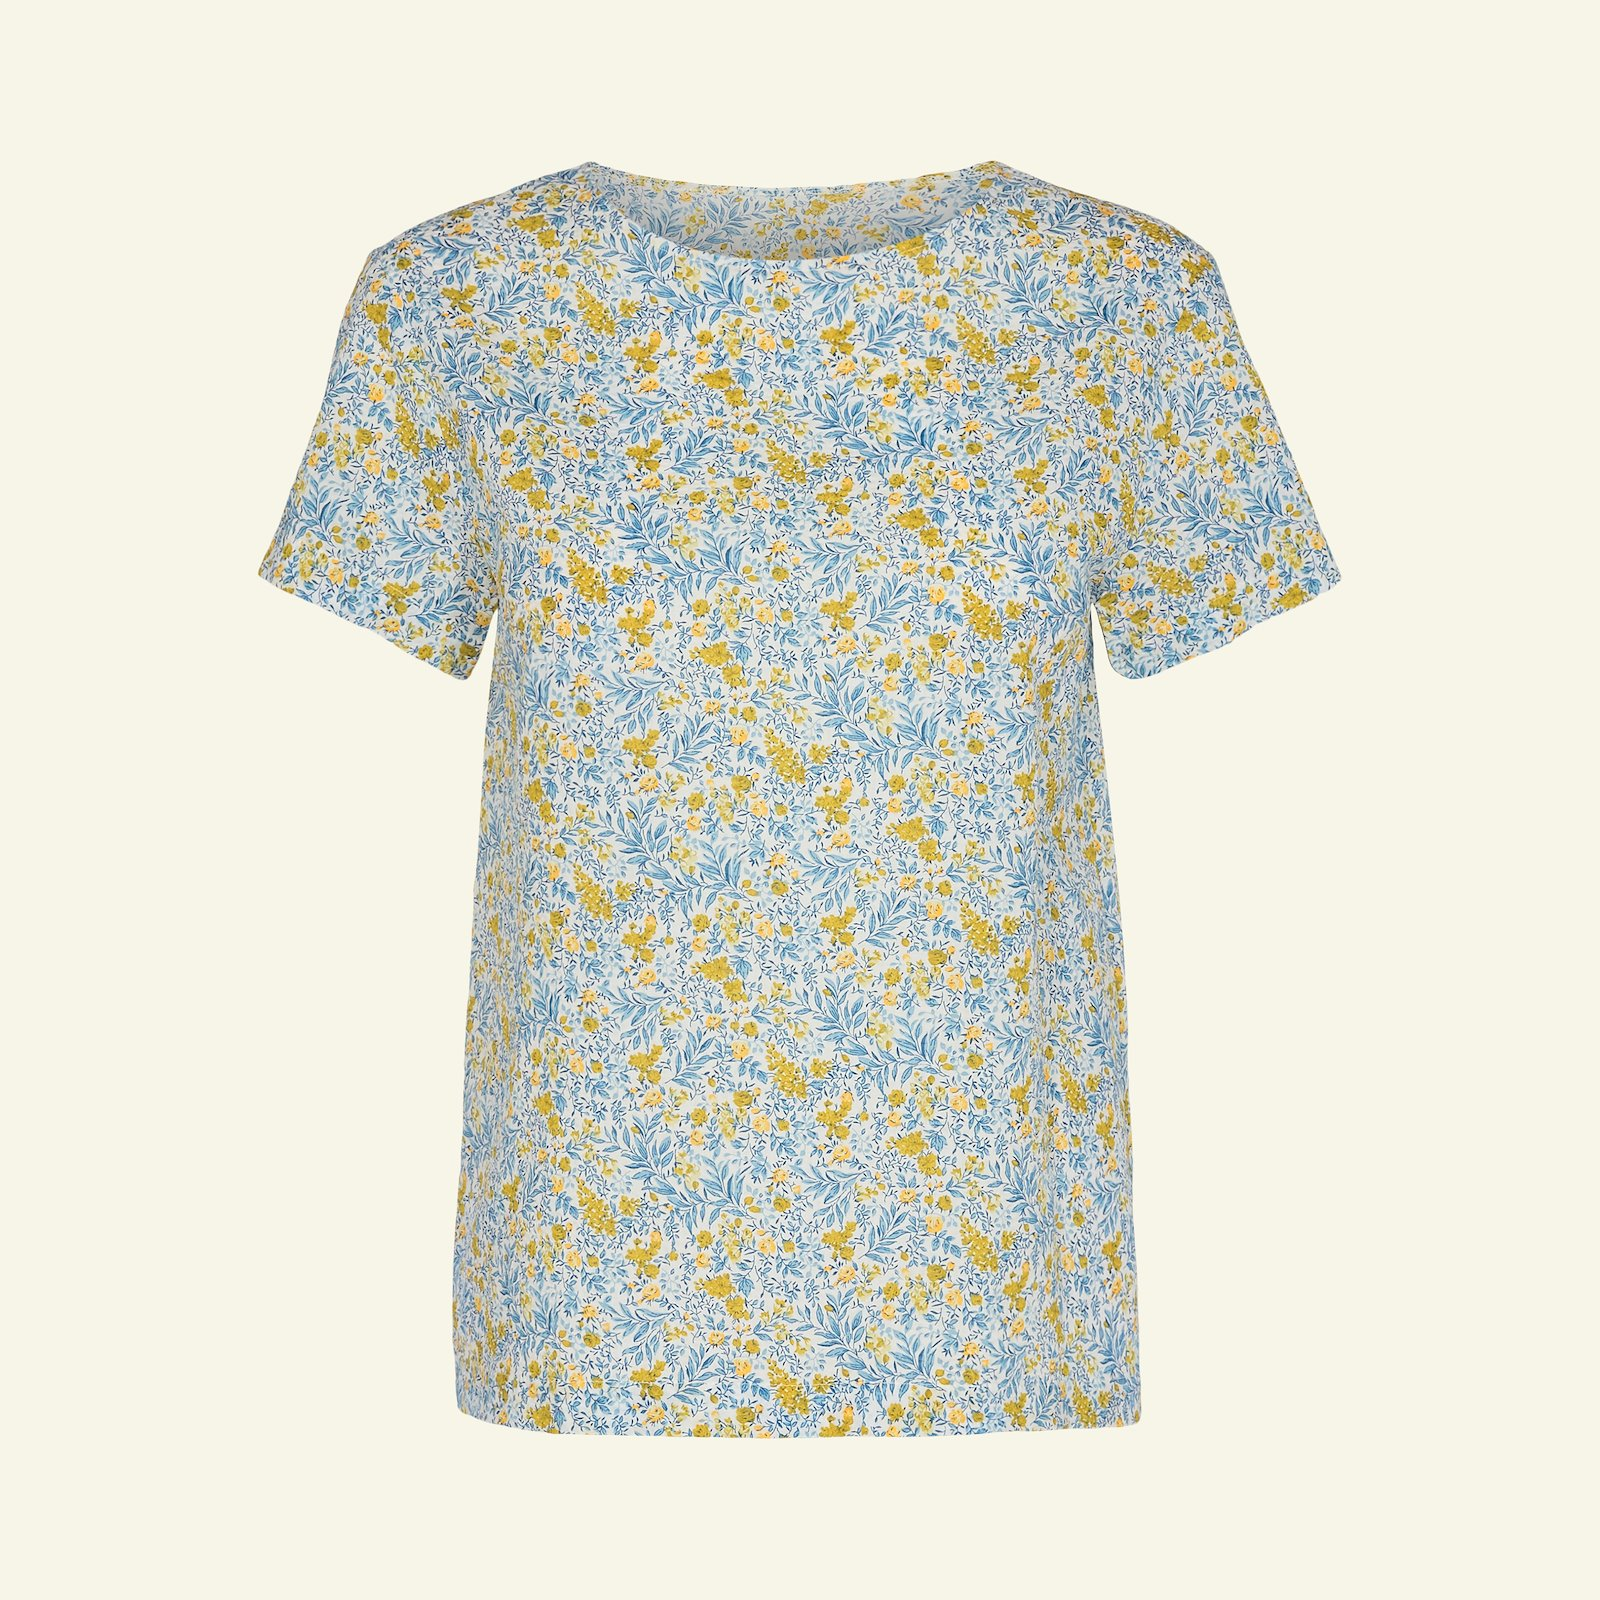 Blouse with flounce, 46/18 p22061_580058_sskit